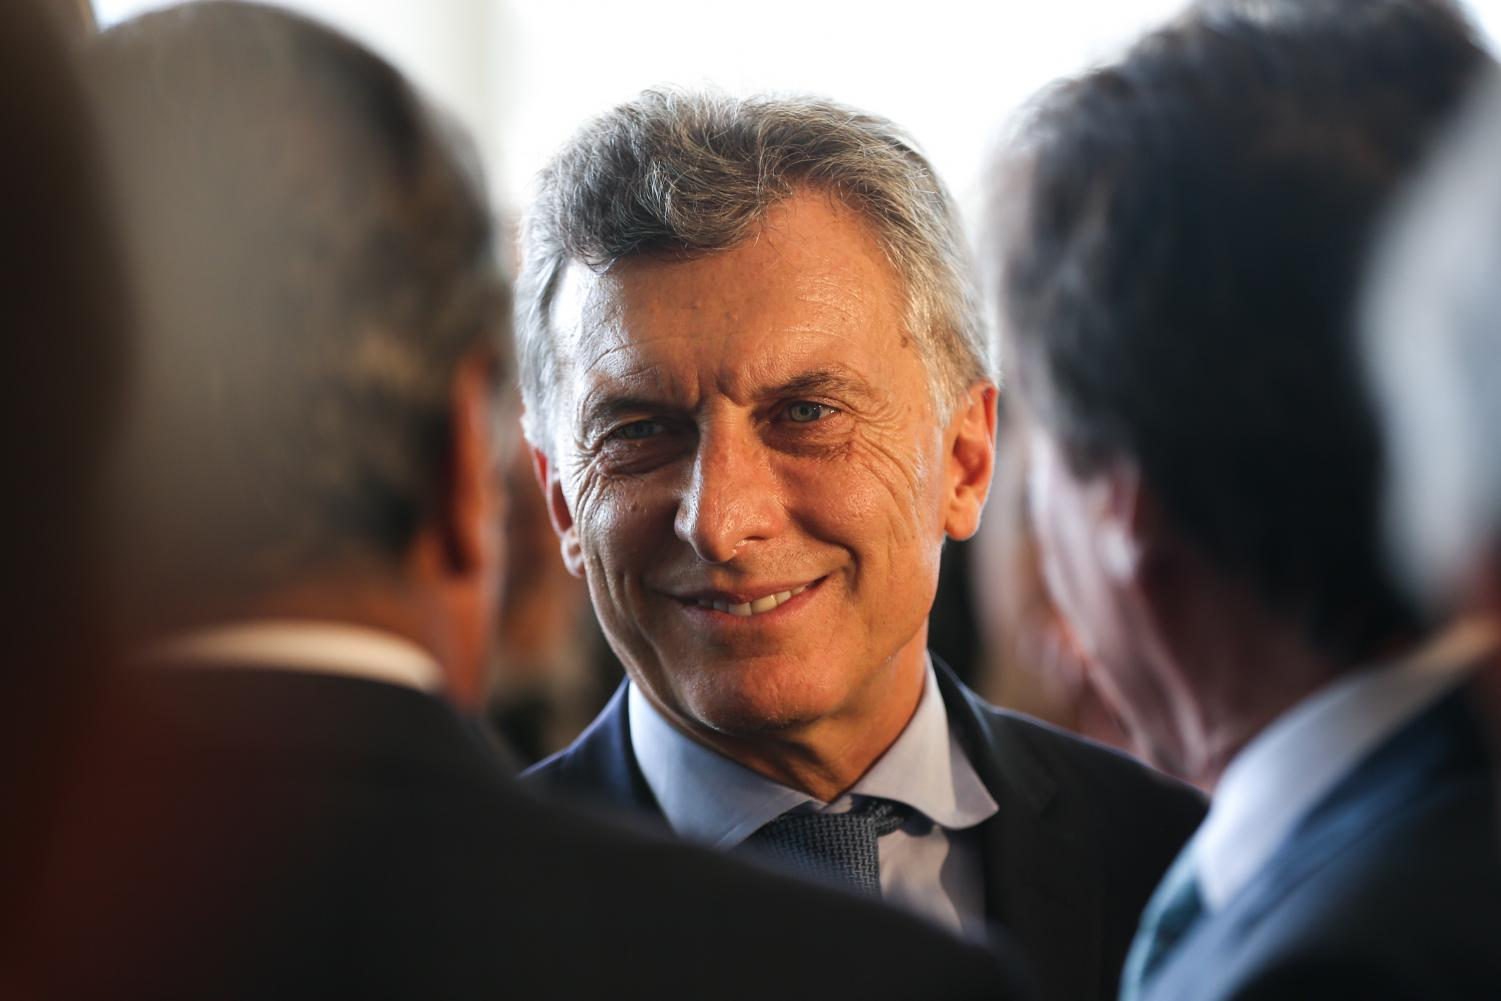 Argentina's president, Mauricio Macri, is received in Brazil on Feb. 7, 2017. The Argentine peso closed at an all-time low April 26 amid an economic crisis spurred on by inflation and high unemployment.